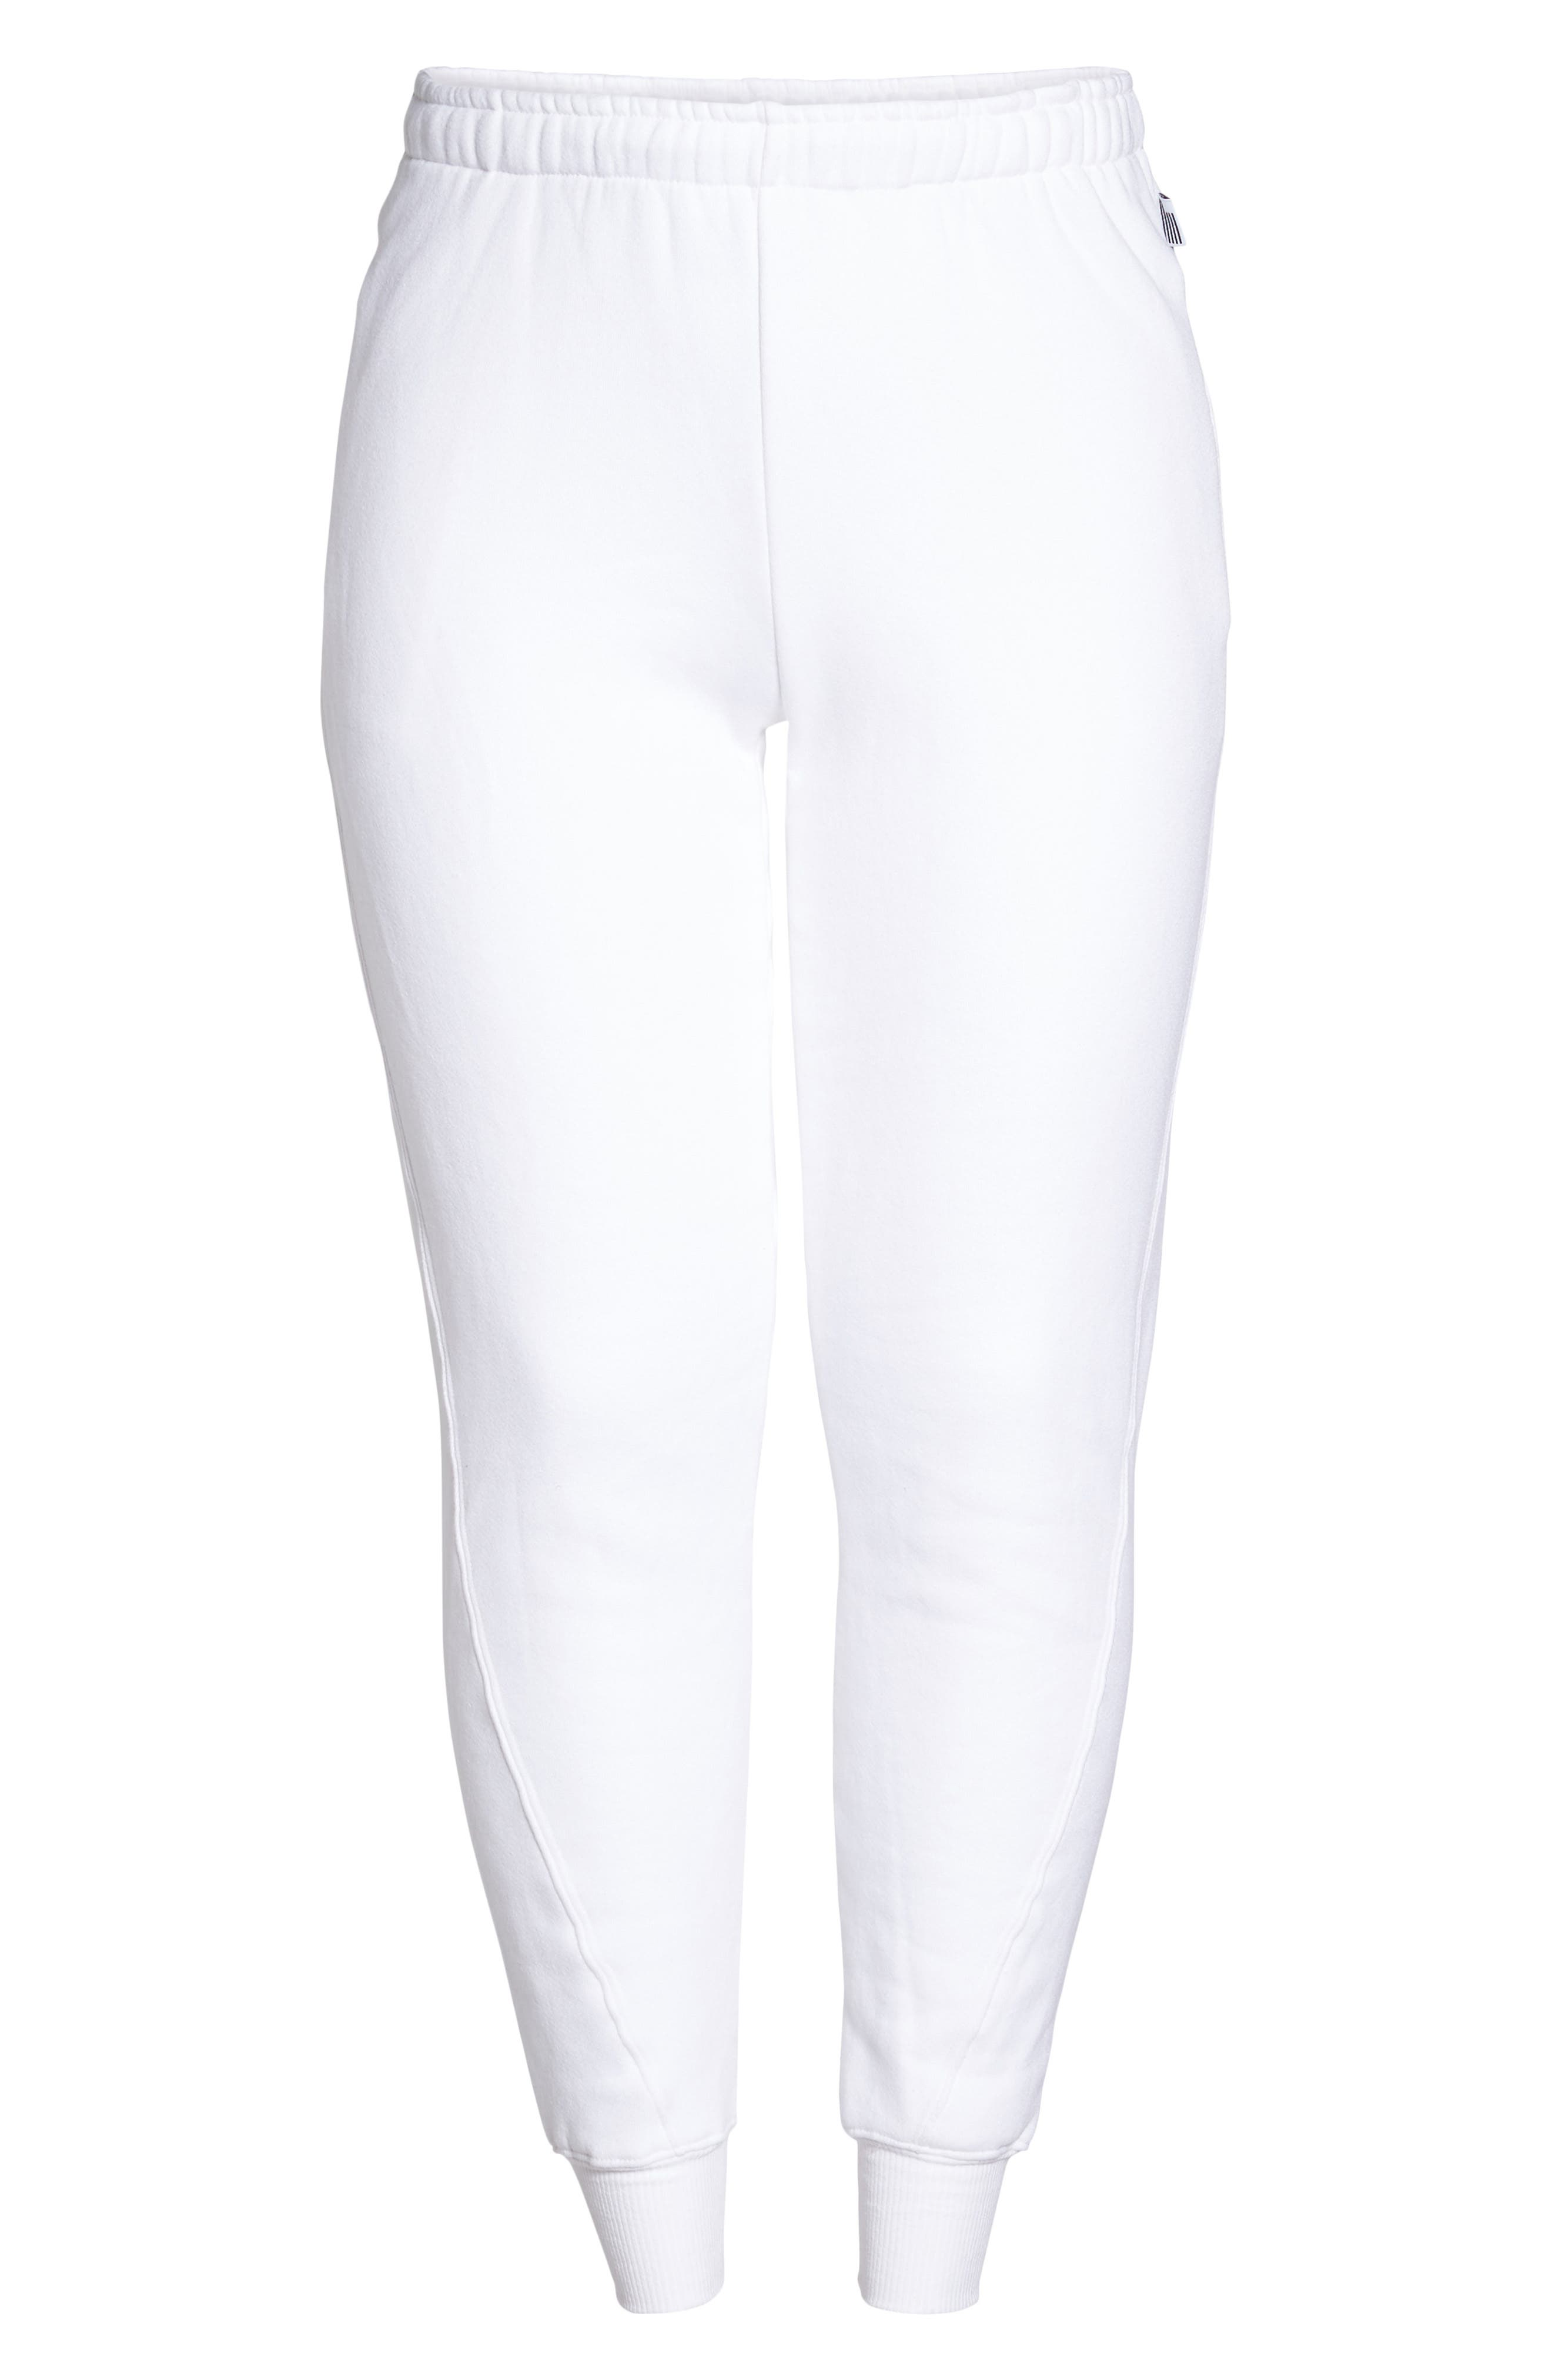 Good Sweats The Twisted Seam Pants,                             Alternate thumbnail 17, color,